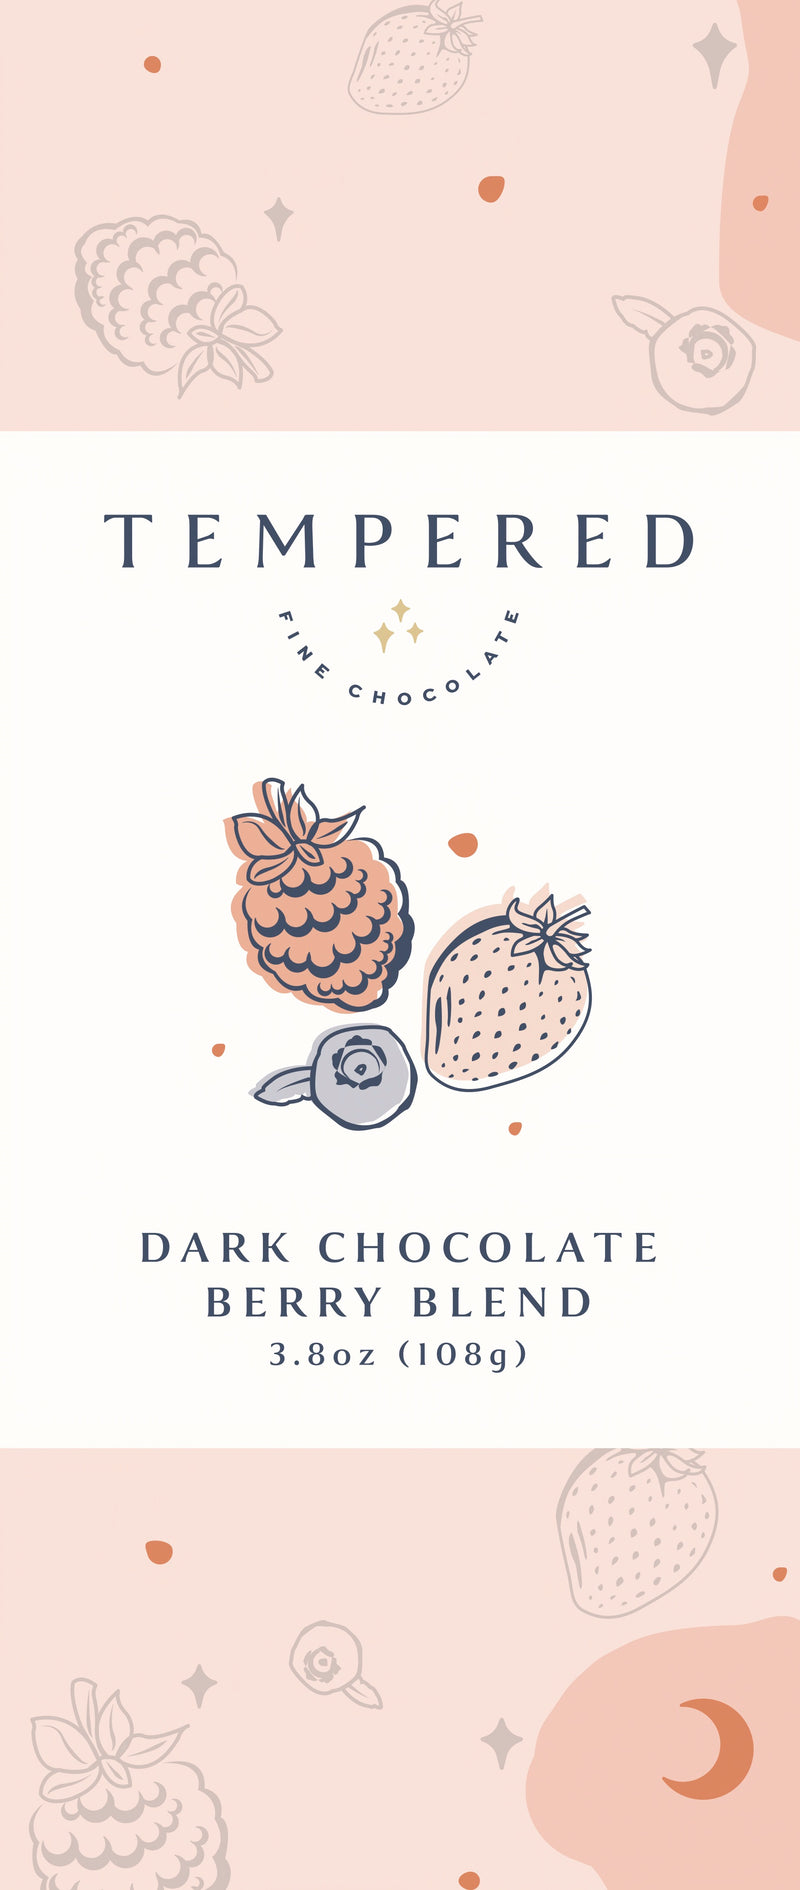 Dark Chocolate Berry Blend Bar